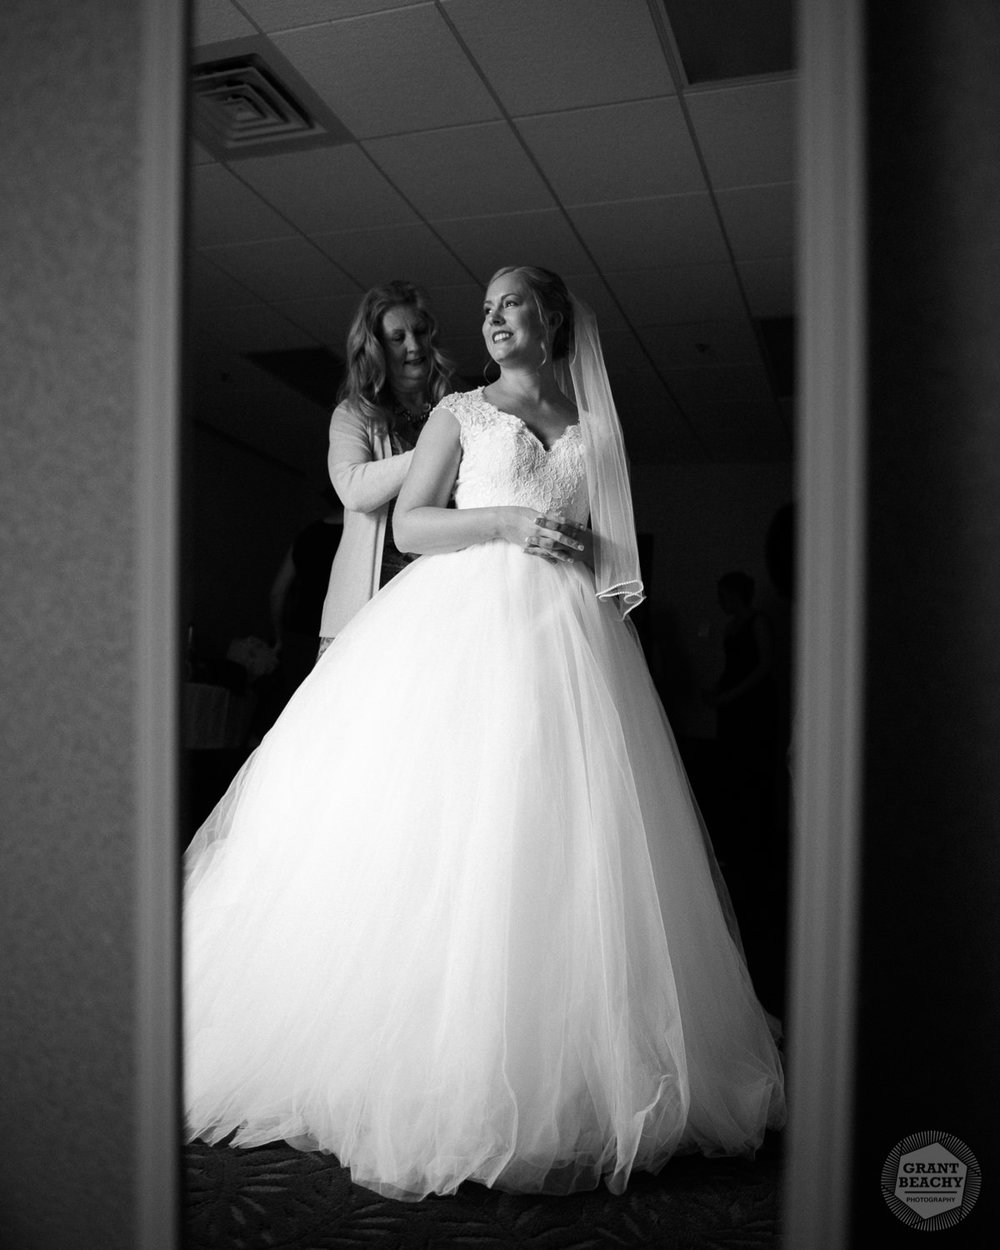 Grant Beachy wedding photography elkhart, south bend, chicago, goshen-10.jpg